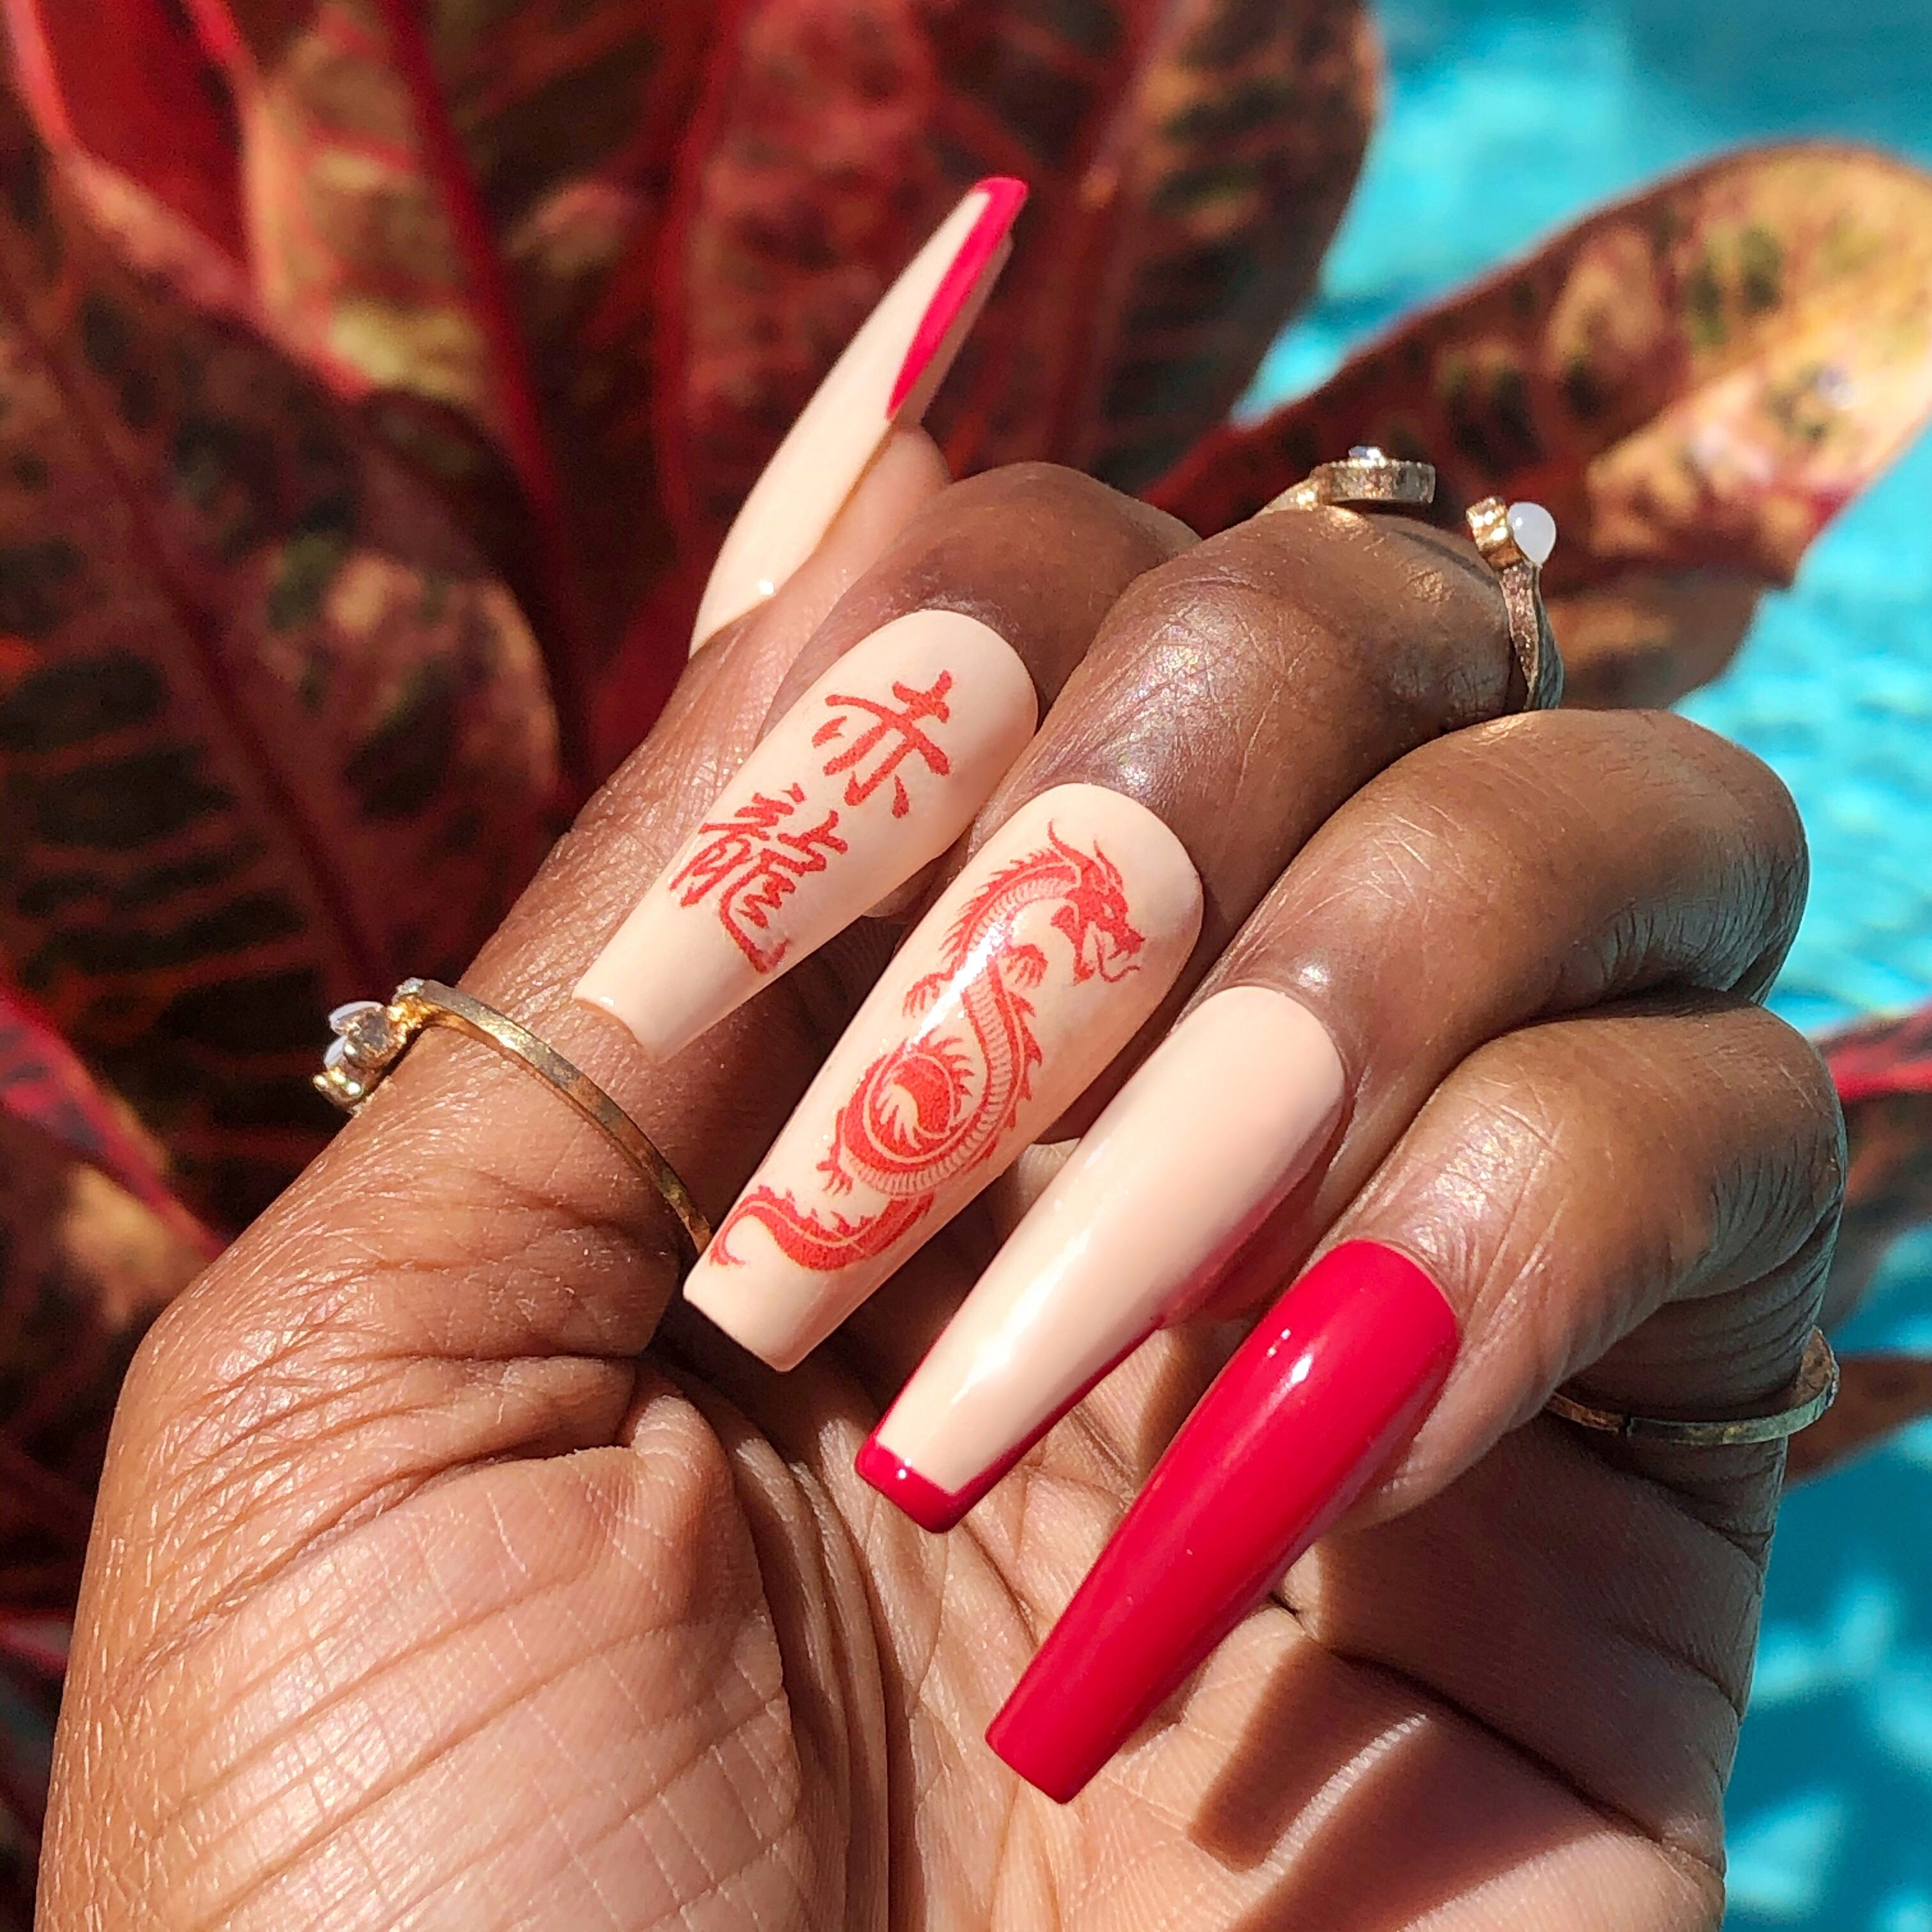 Red Dragon Press On Nails In 2020 Red Acrylic Nails Dragon Nails Glitter Nails Acrylic